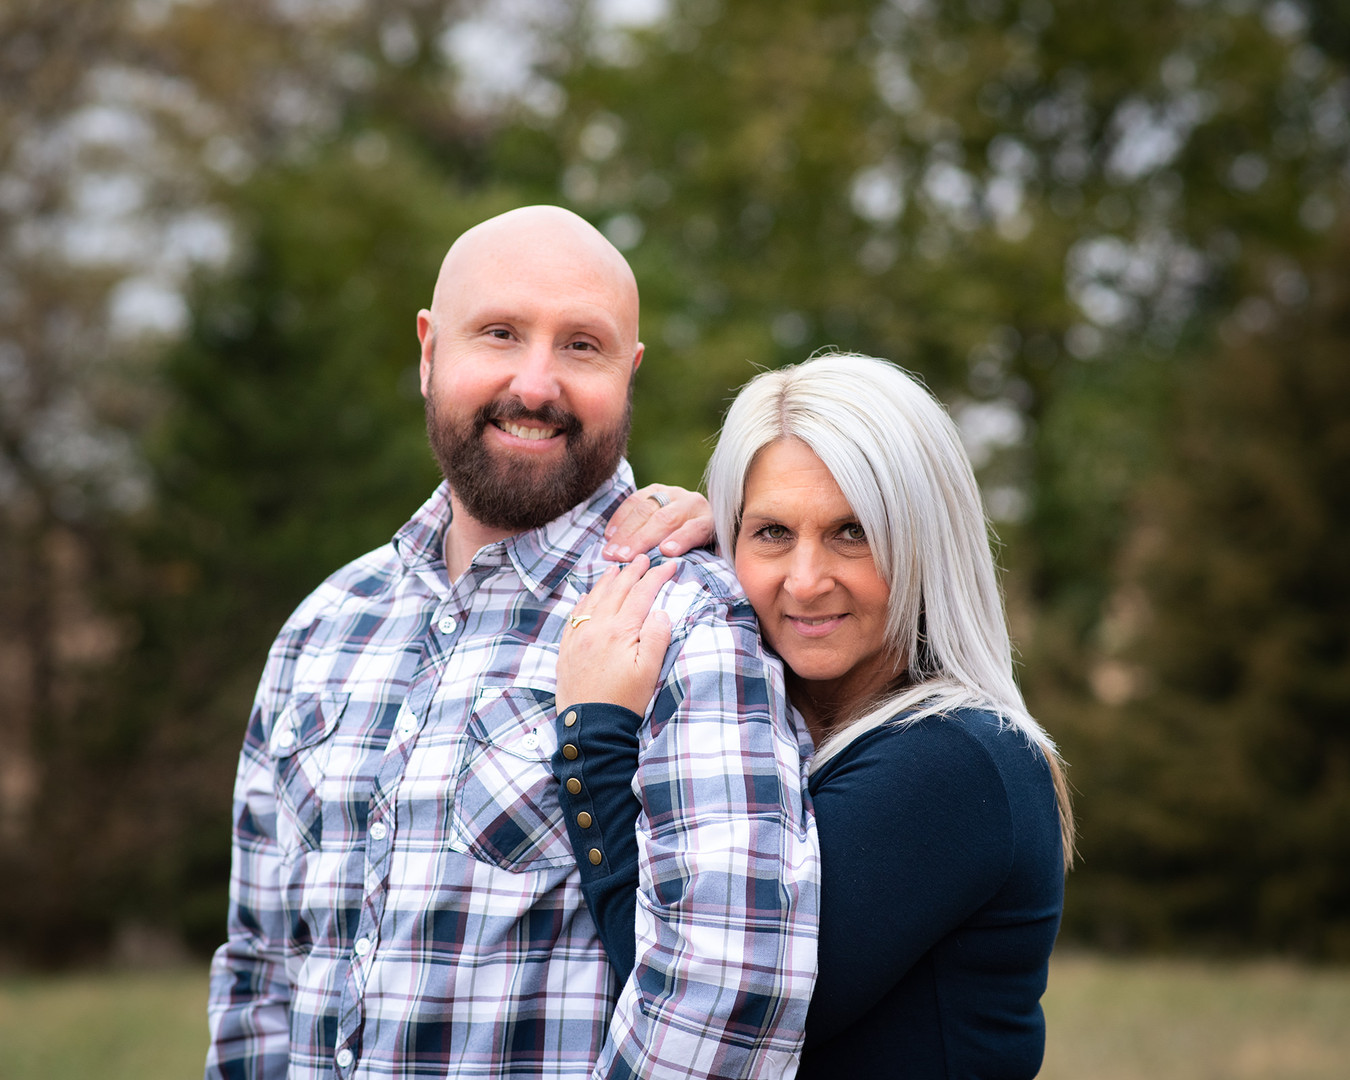 couples-portrait-nebraska-emdukat-photography.jpg